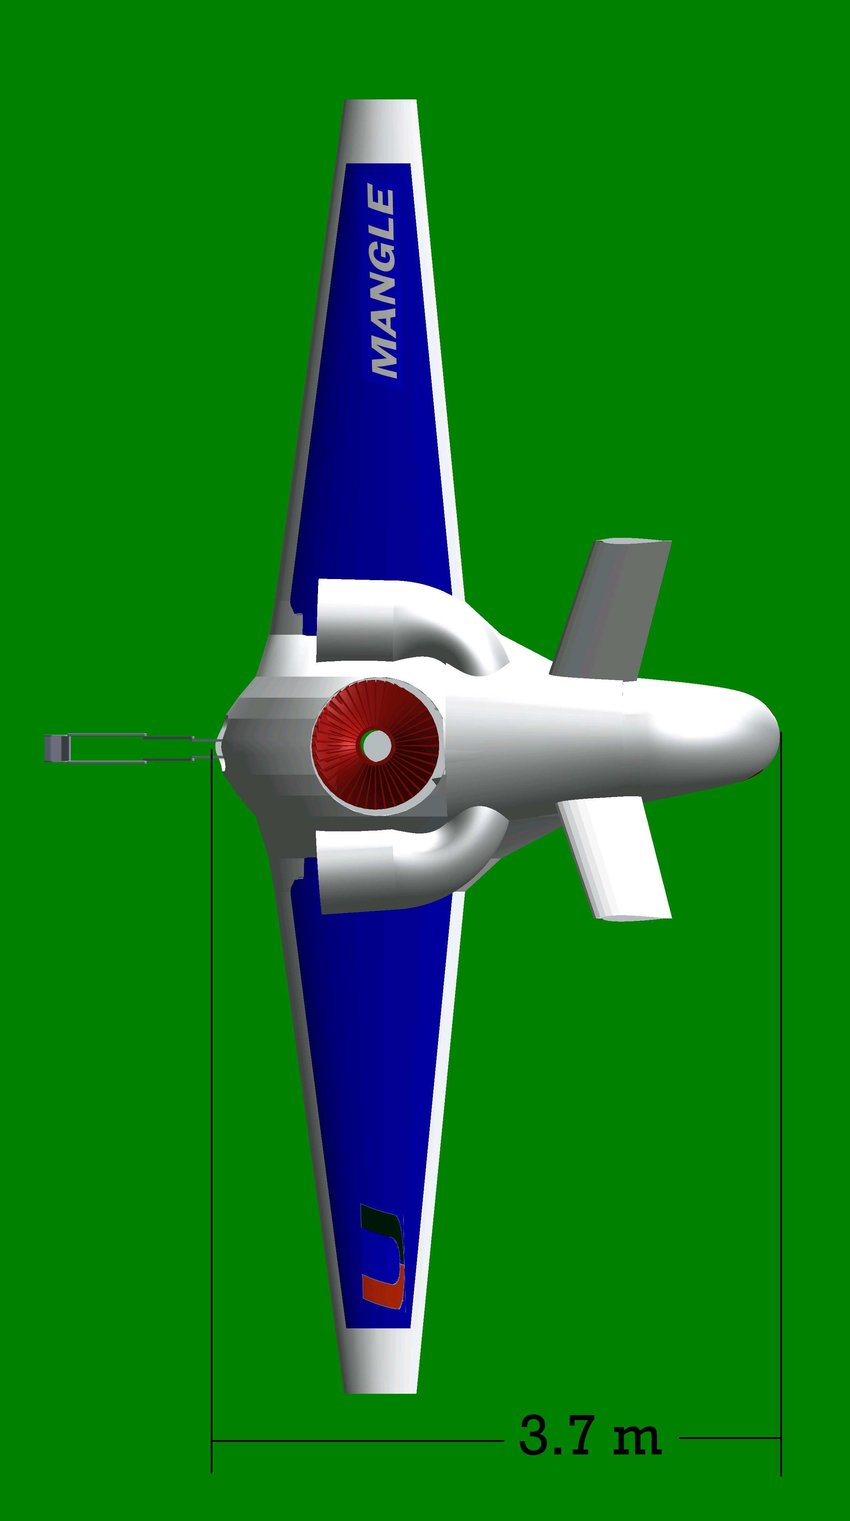 hight resolution of mangle top view for takeoff landing with mechanical arm extending out and vectored nozzle bent